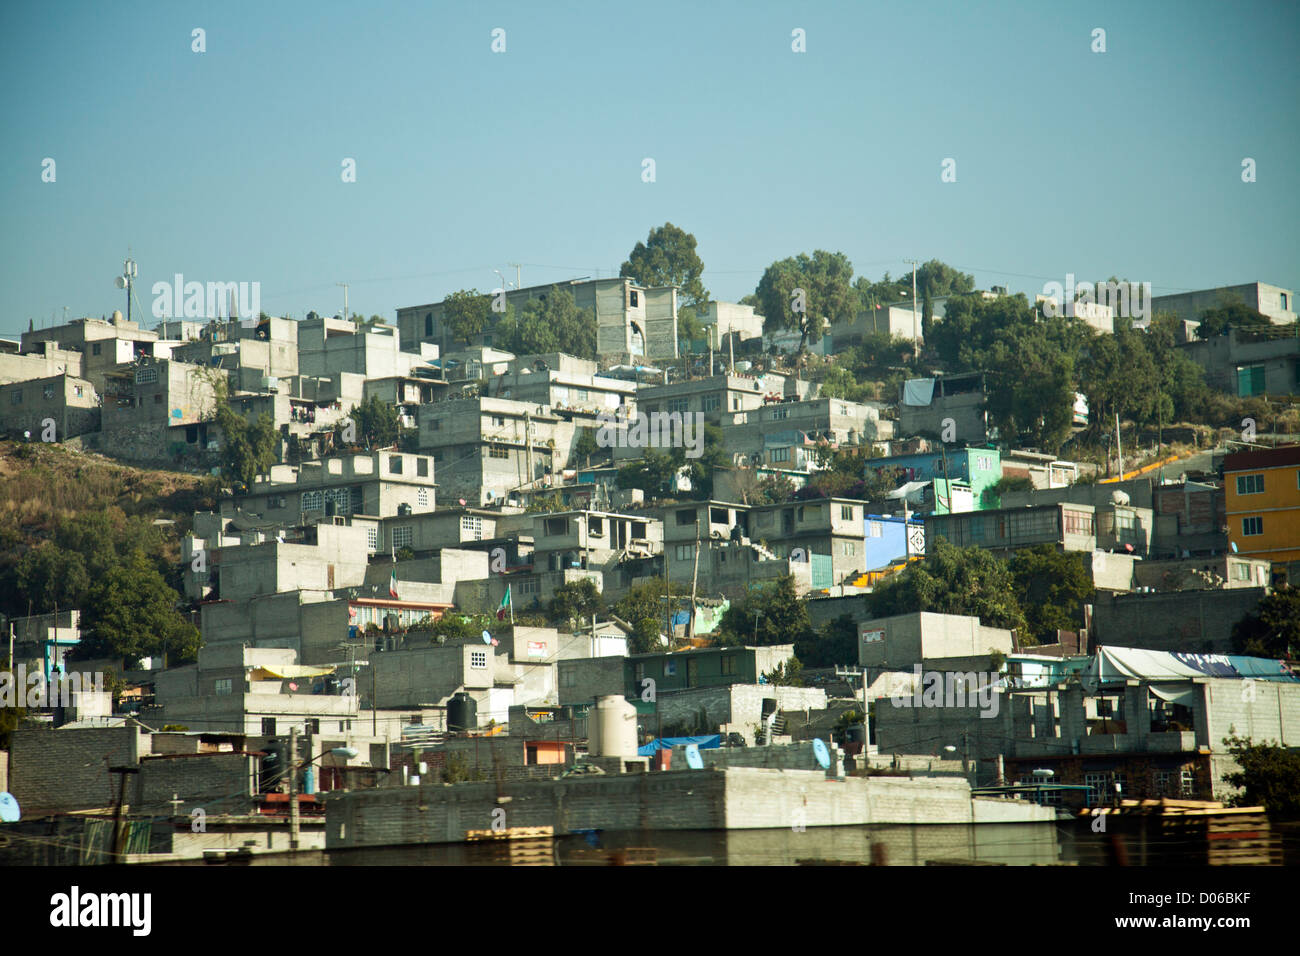 Settlements outside, to north east, of Mexico City - Stock Image